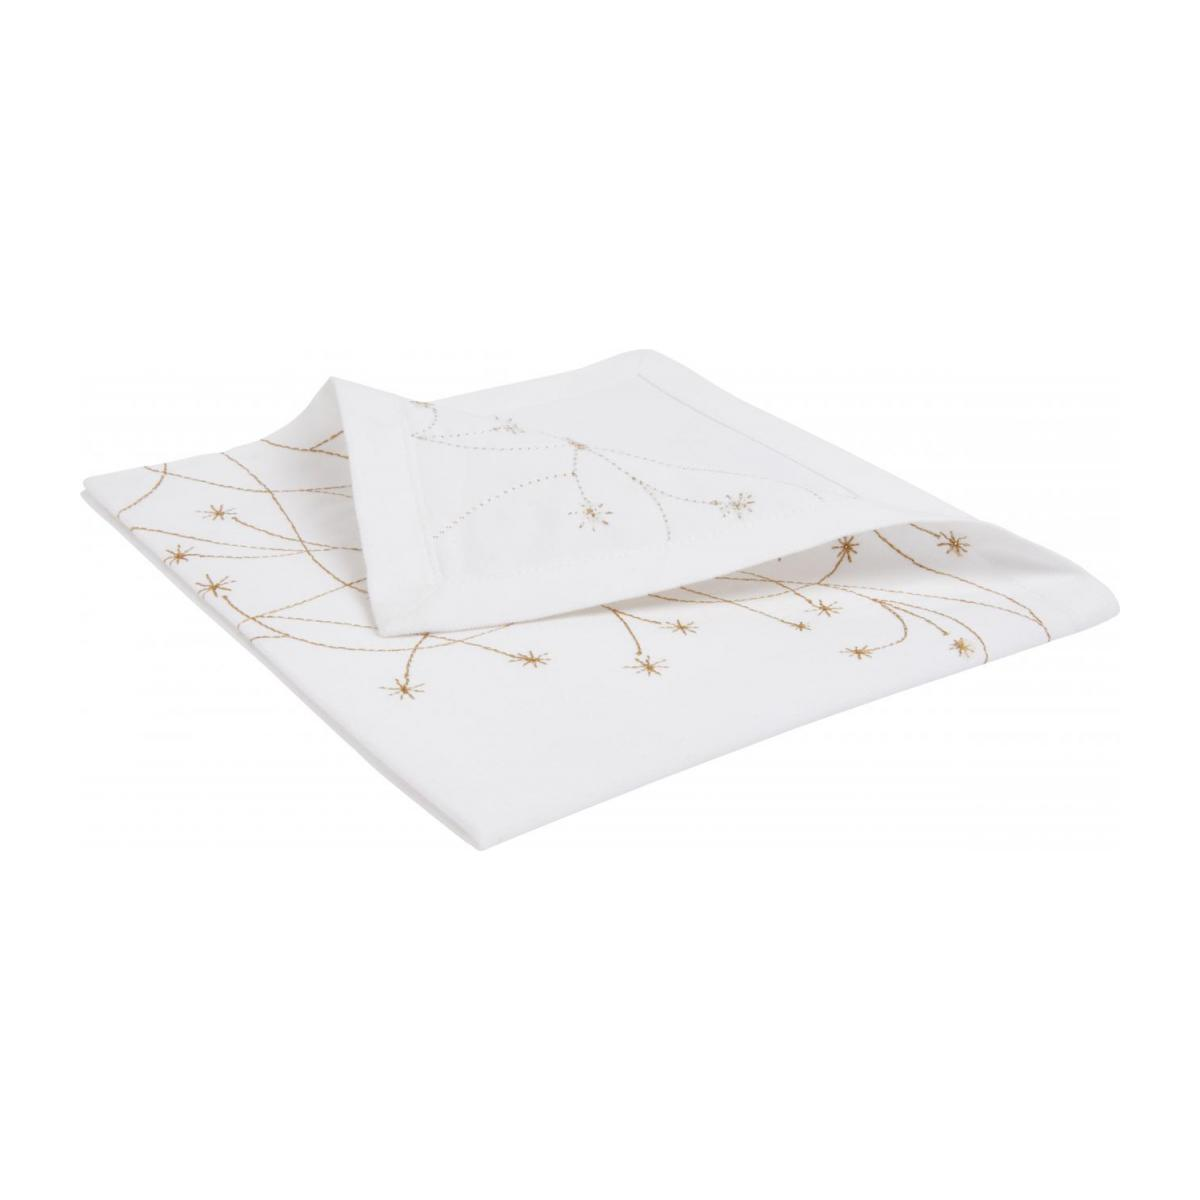 Embroidered napkin made of cotton, white and golden n°2